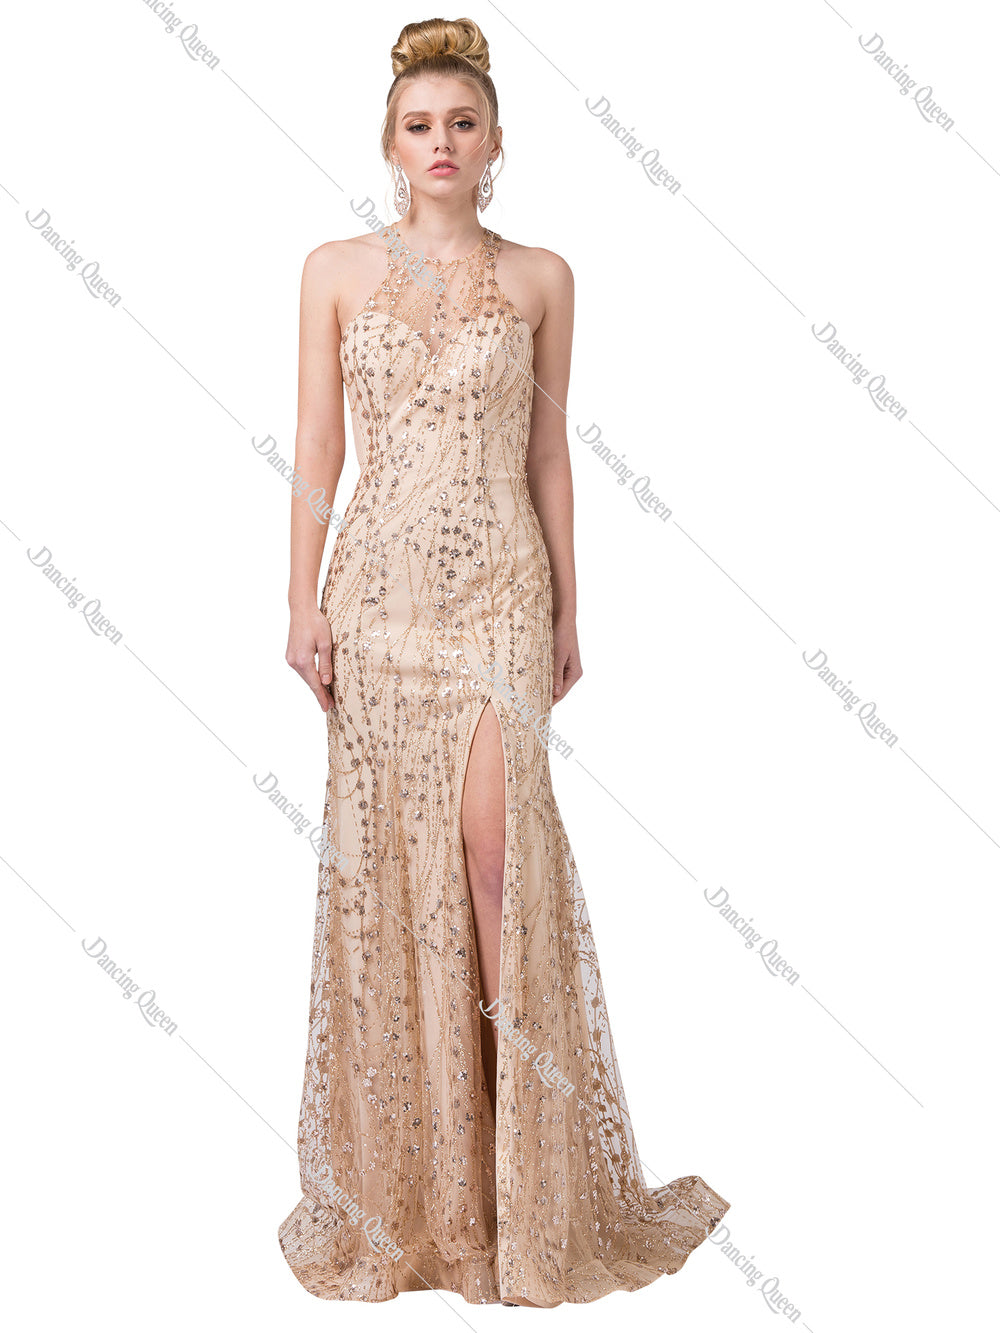 Dancing Queen DQ 2618 - Fitted shimmery bead embellished v-neck with high leg slit - Diggz Prom